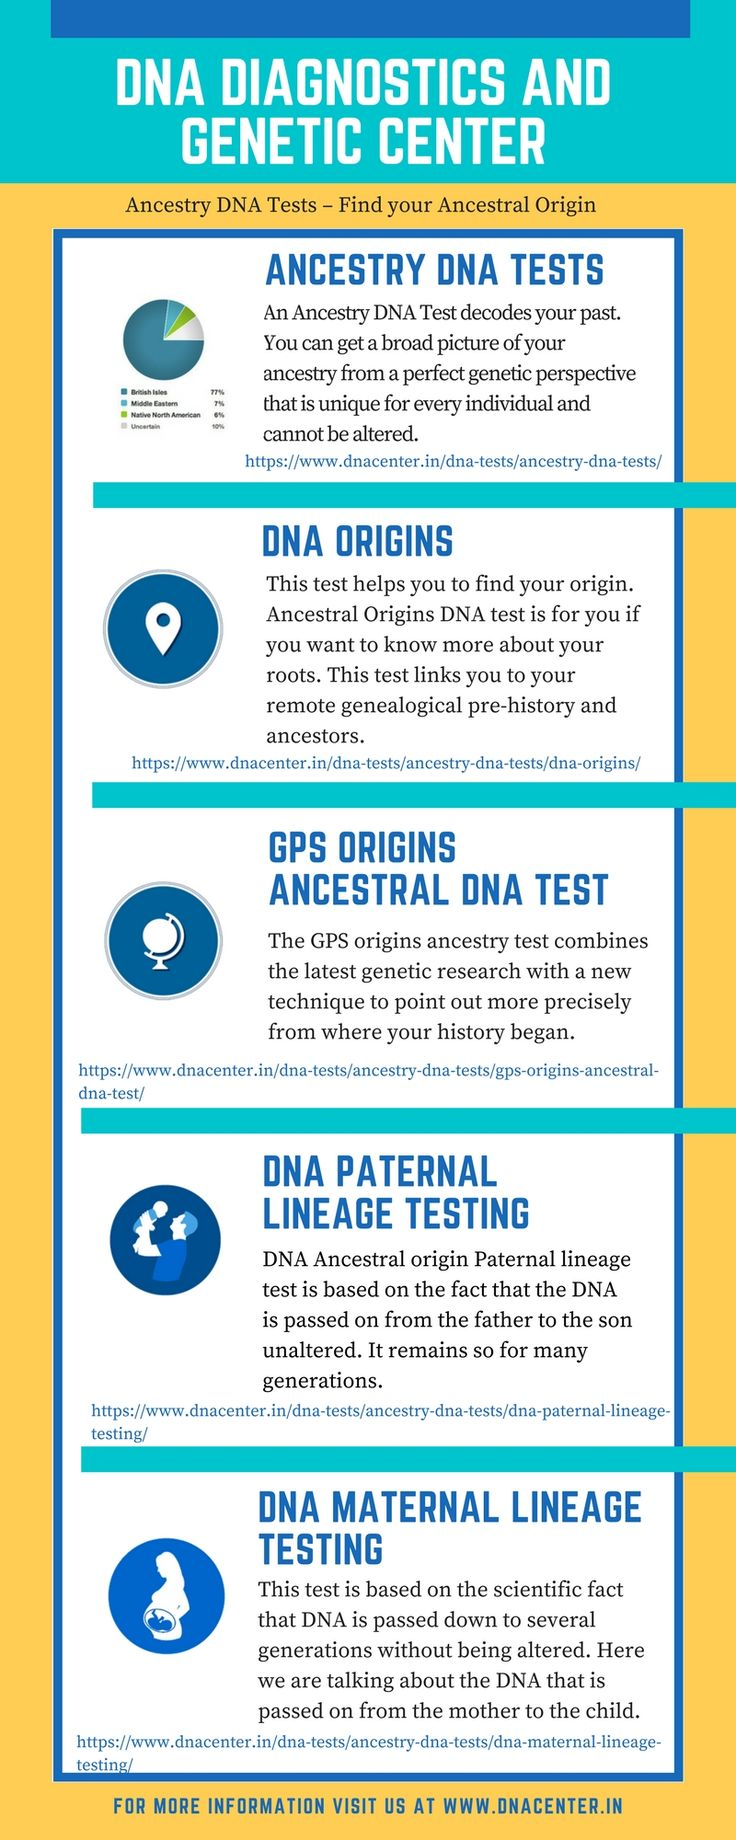 DNA DIAGNOSTICS AND GENETIC CENTER